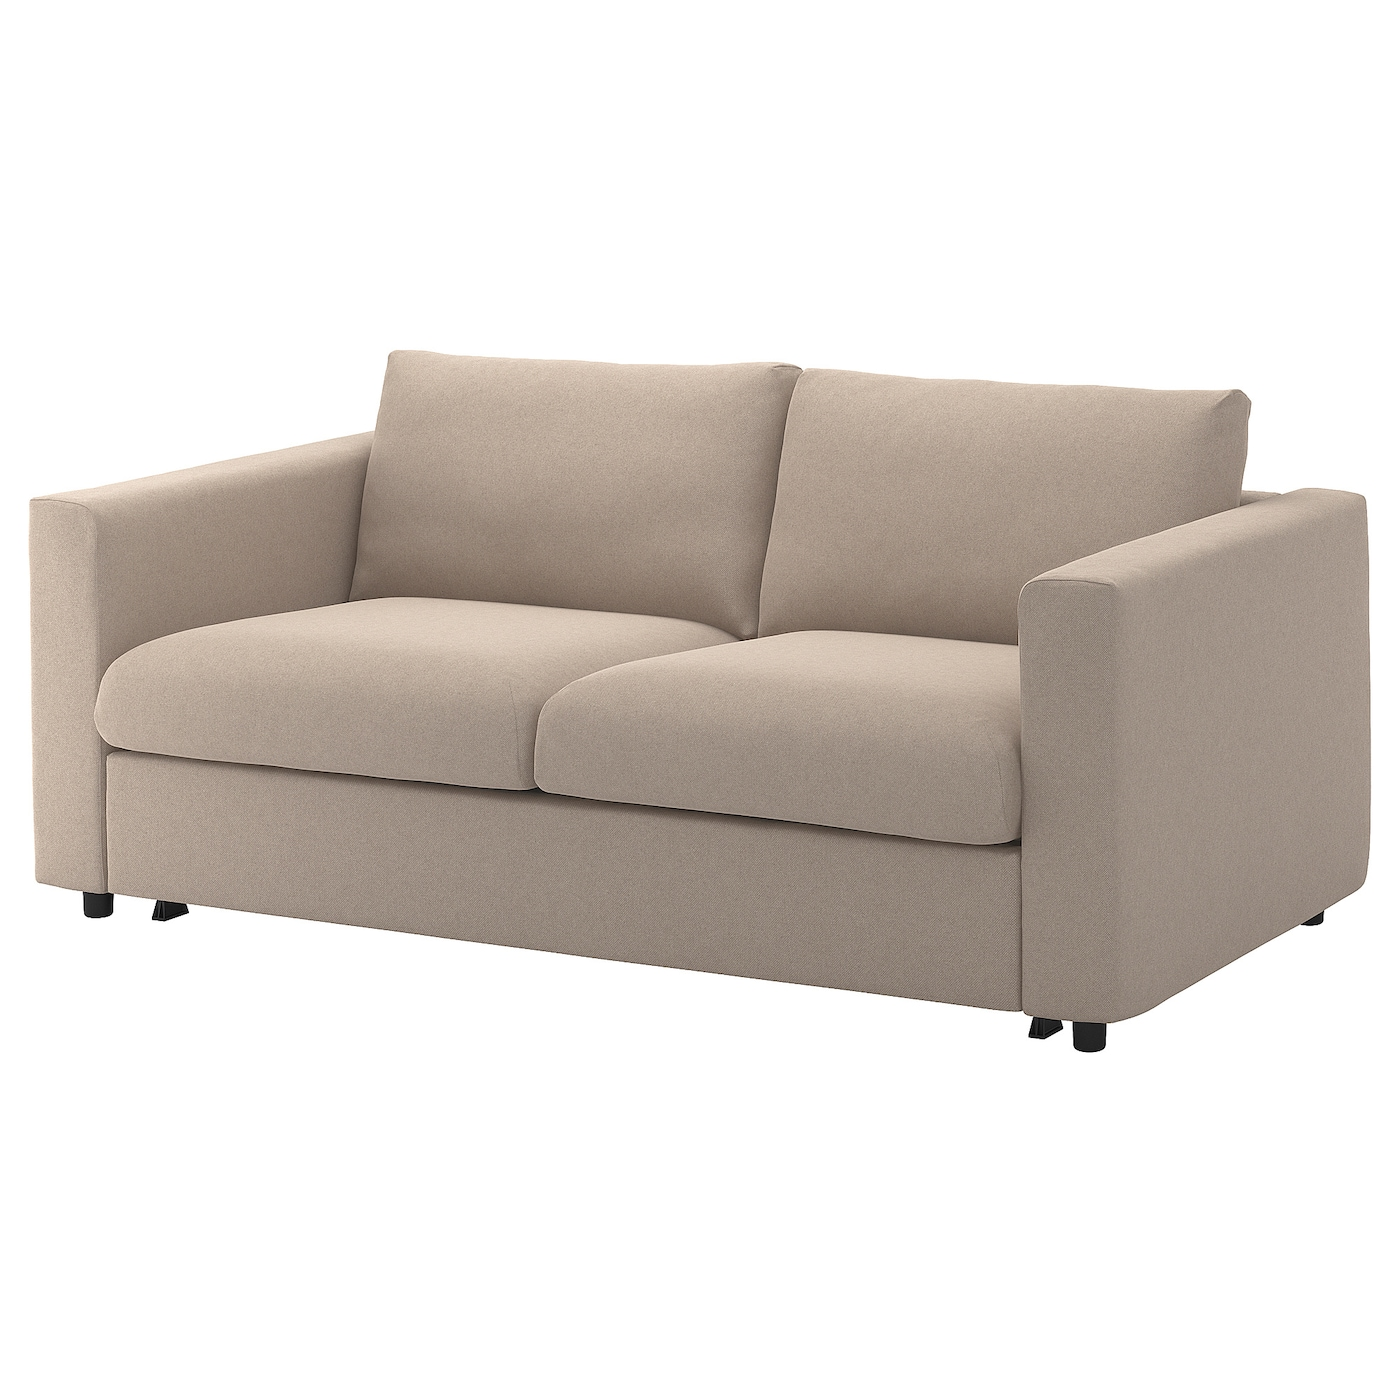 Ikea Vimle 2 Seat Sofa Bed 10 Year Guarantee Read About The Terms